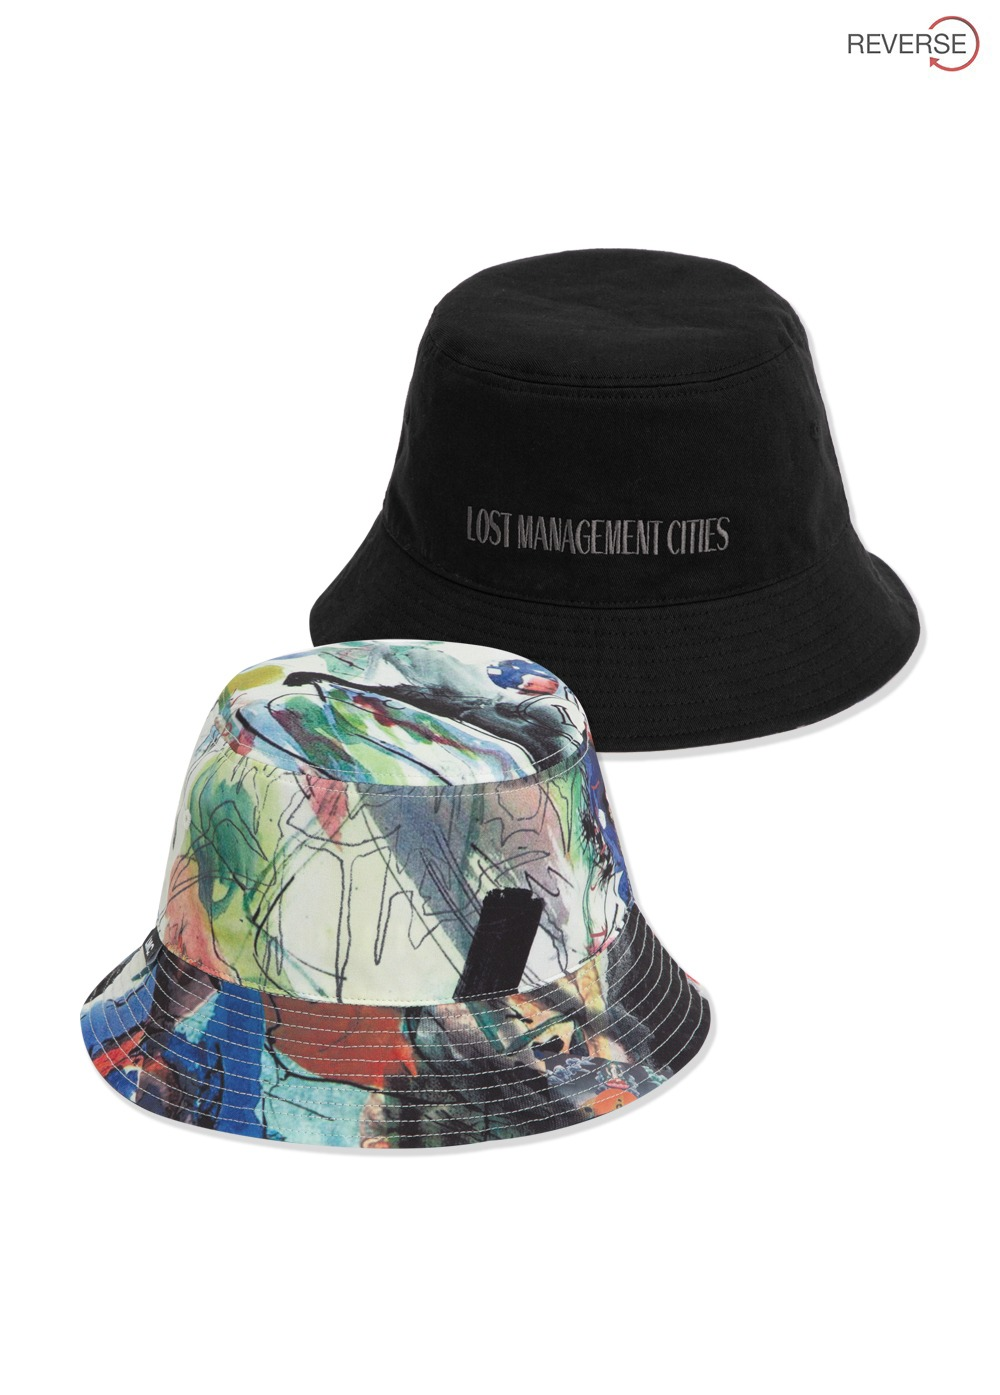 LMC ARTWORKS PAINTING REVERSIBLE BUCKET HAT black